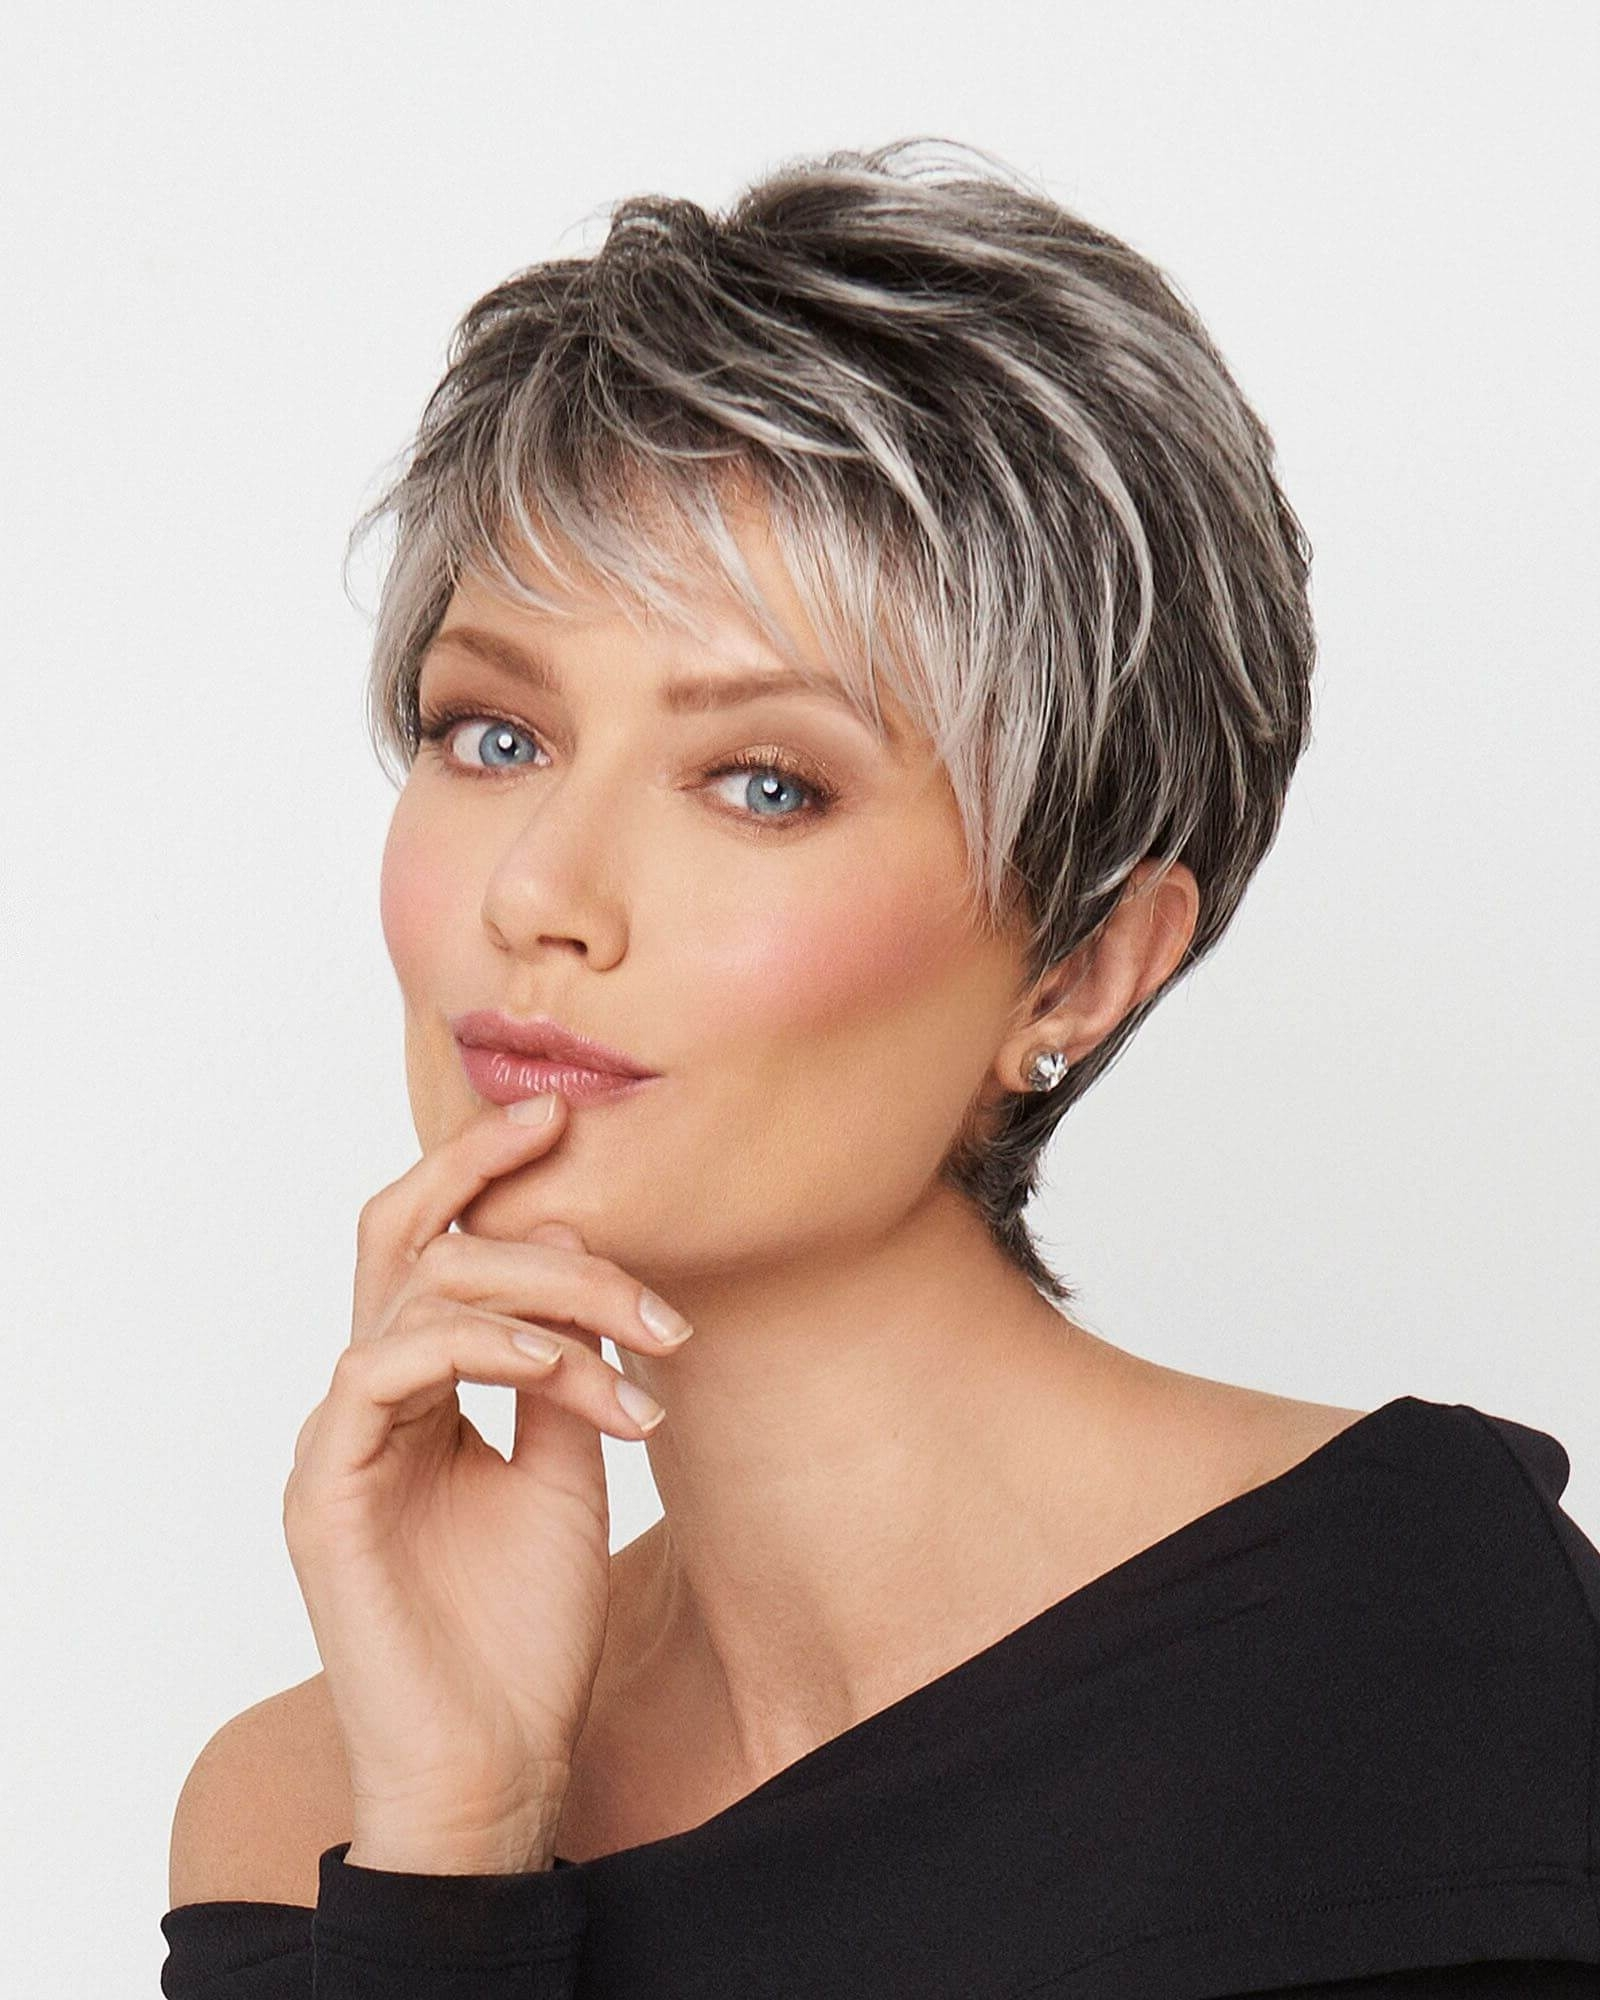 50 Pixie Haircuts You'll See Trending In 2018 Intended For Well Known Classic Pixie Hairstyles (View 5 of 20)